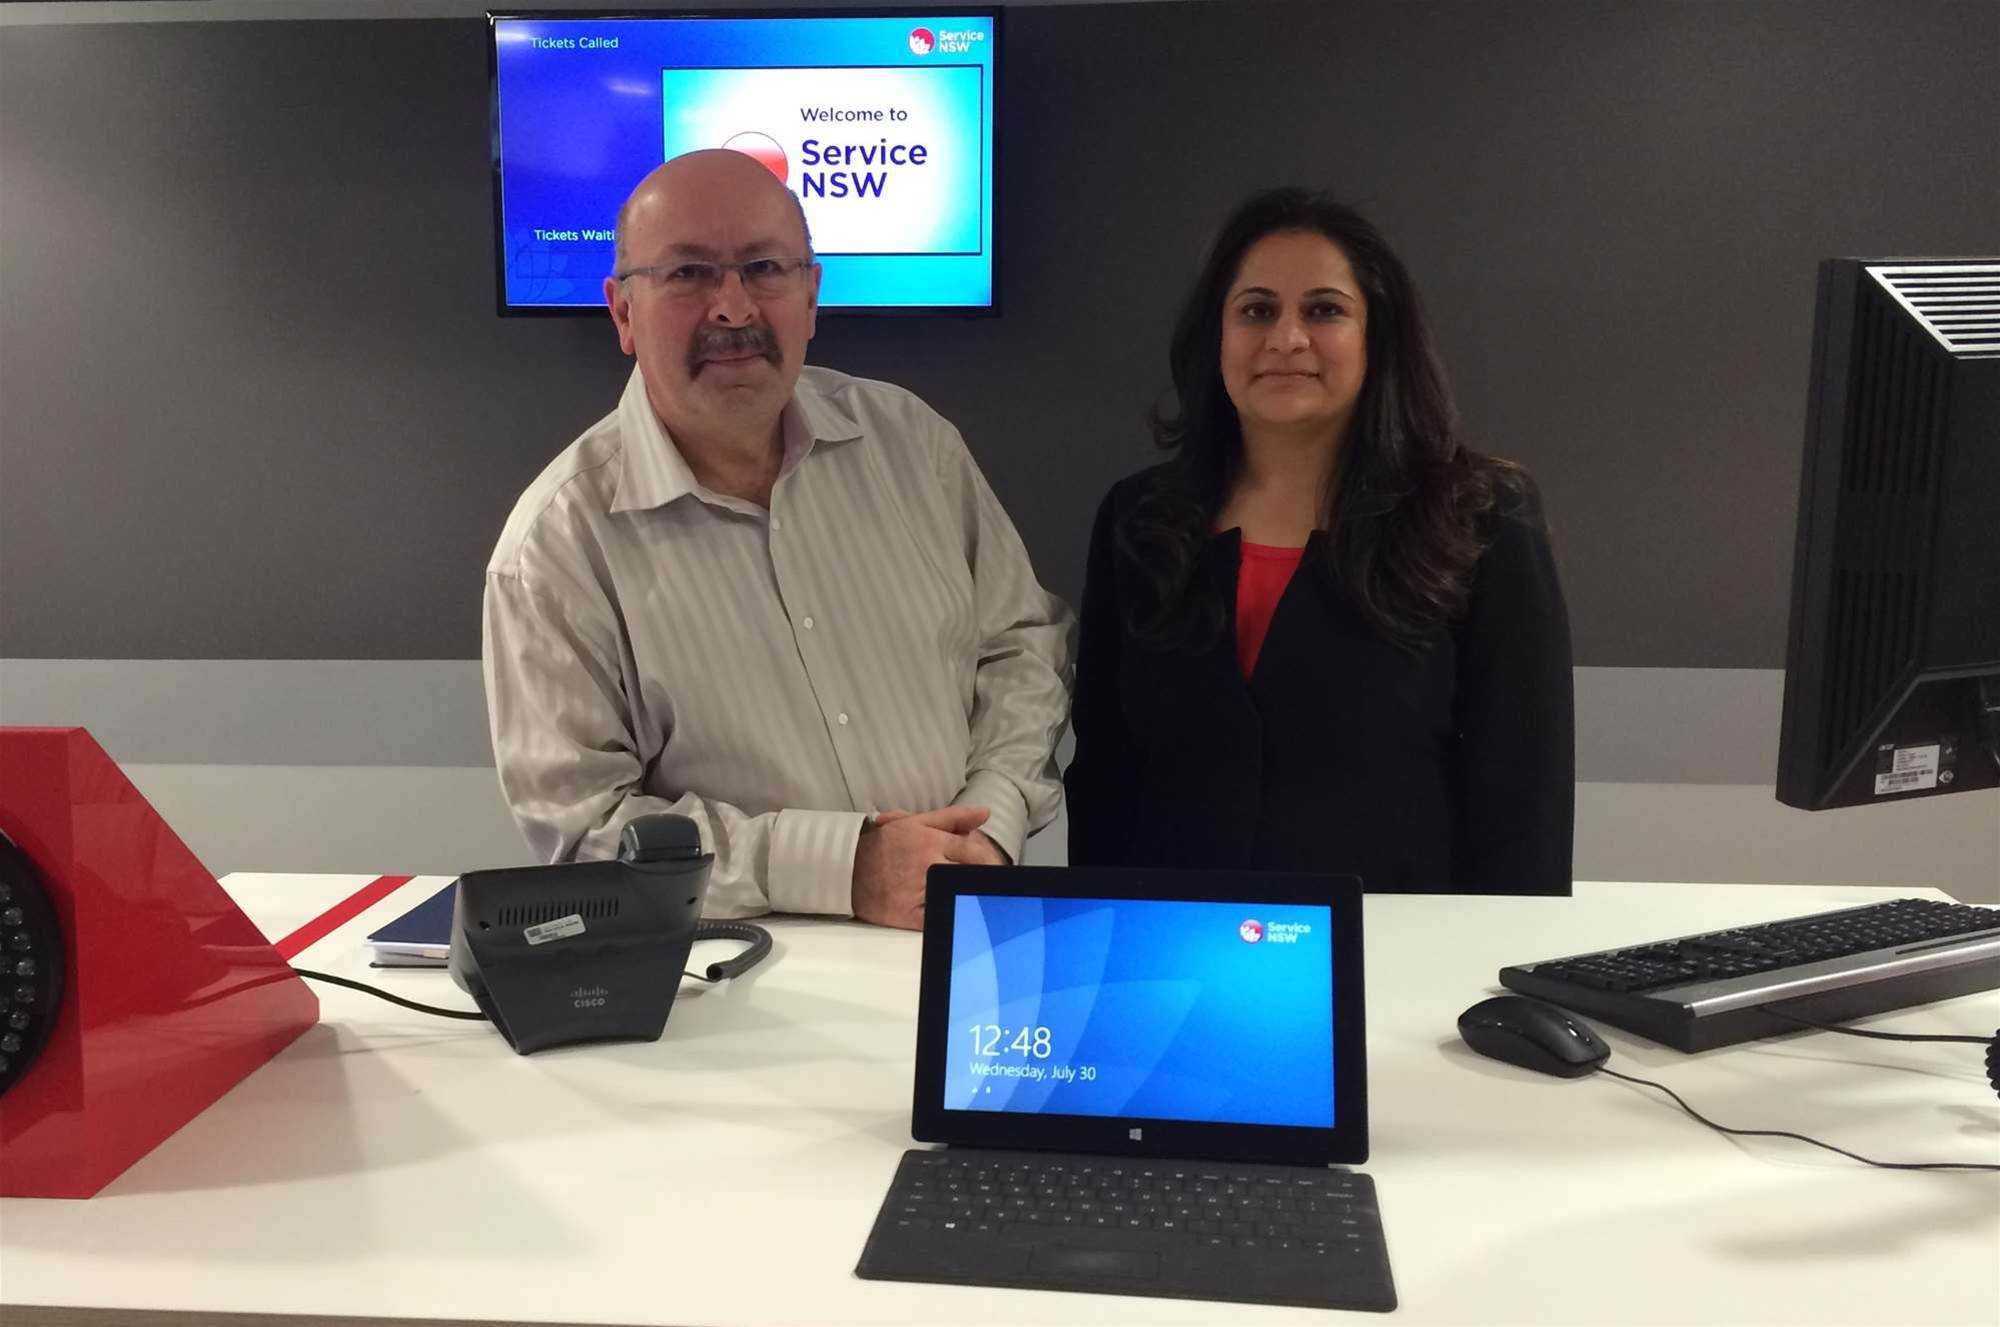 How Service NSW uses data to create 'healthy competition'